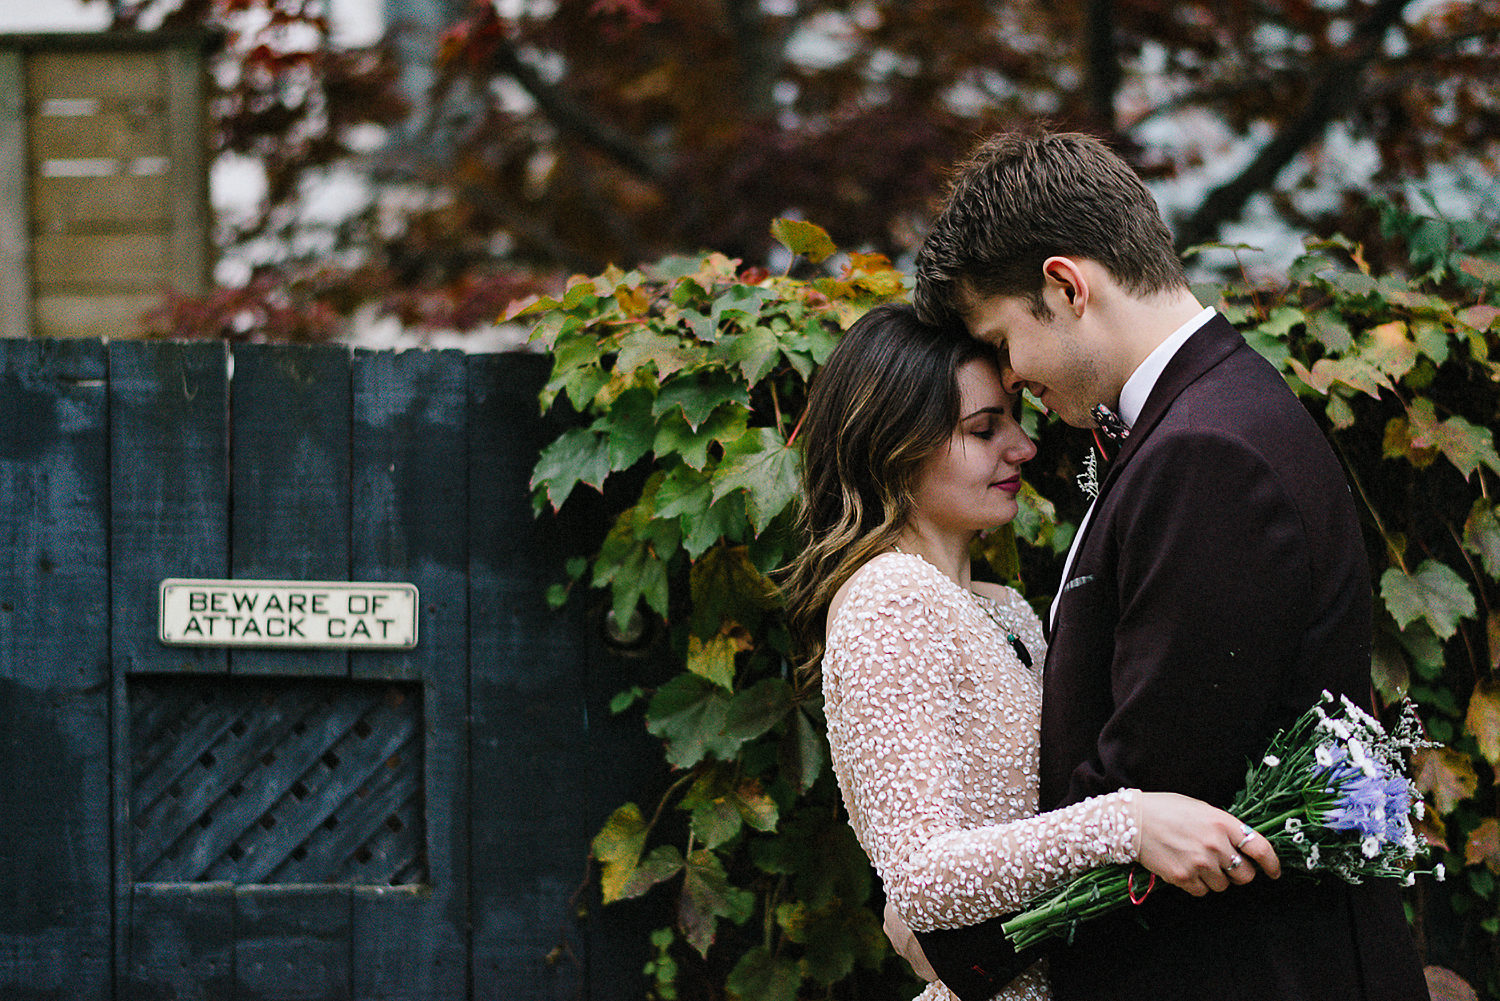 37-Best-Elopement-Photographers-Toronto-Fall-Wedding-Elopement-Modern-Vintage-Hipster-Beauty-Leaves.JPG